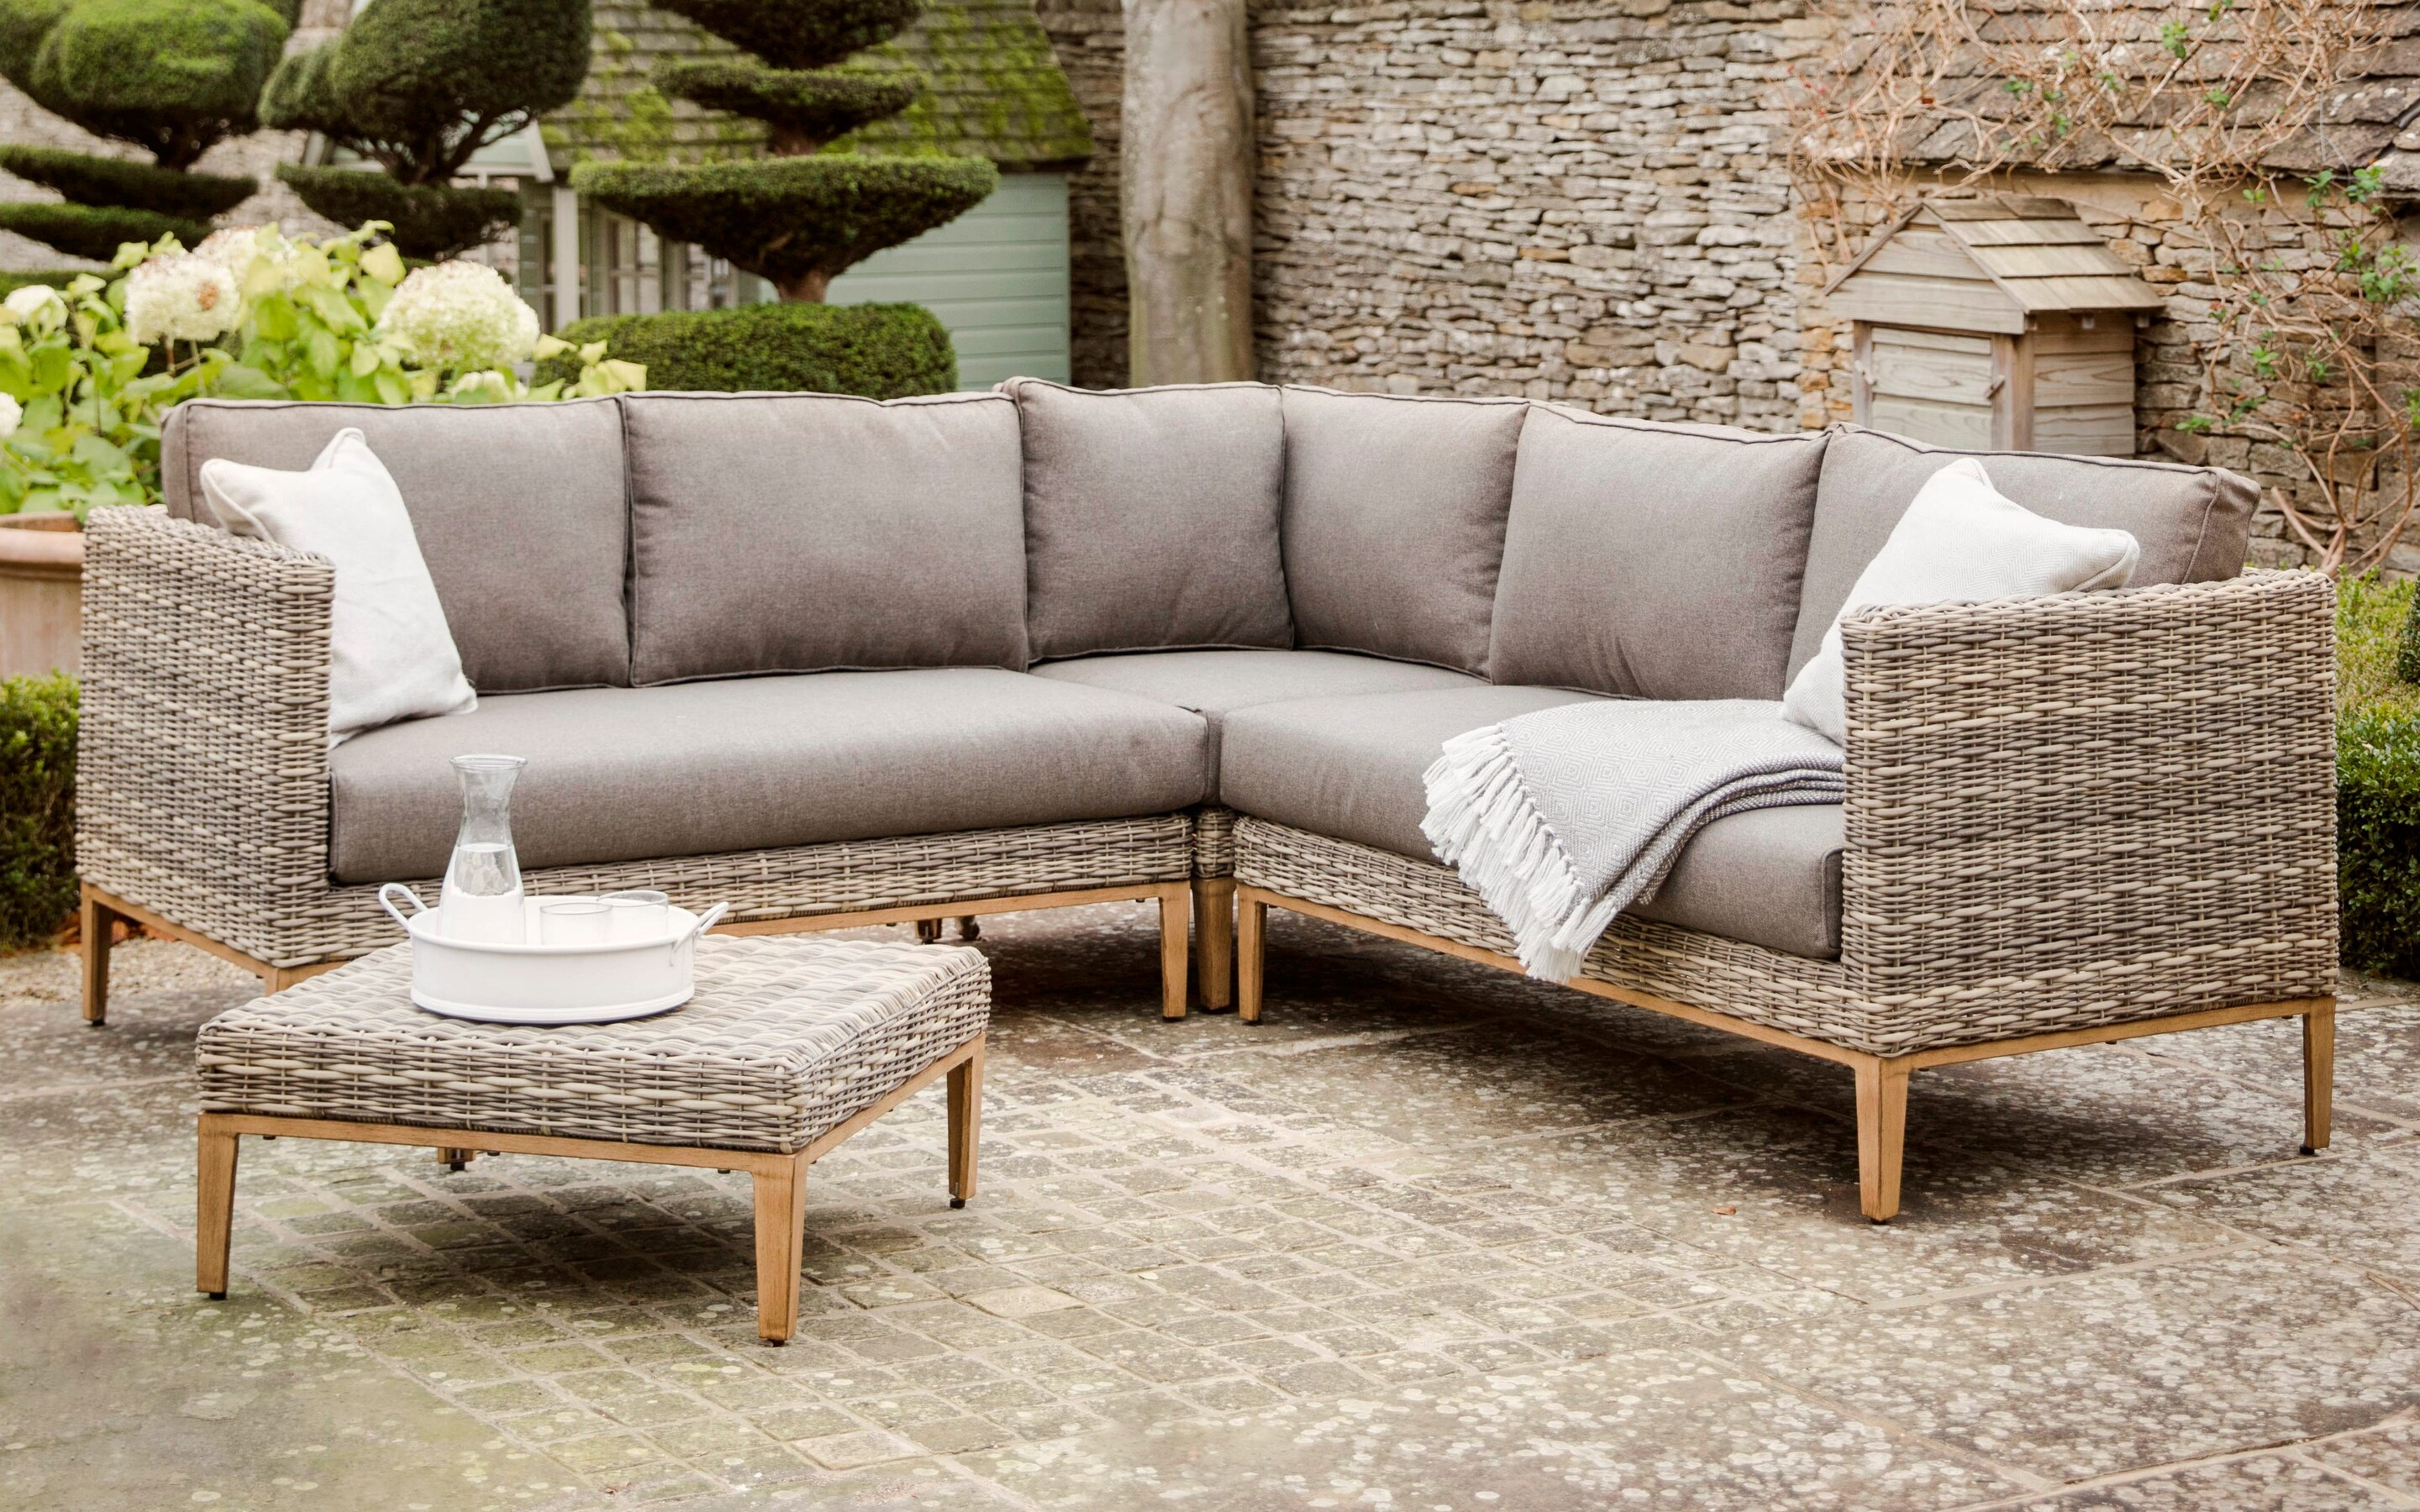 Designer Sofas John Lewis Best Rattan Garden Furniture And Where To Buy It The Telegraph